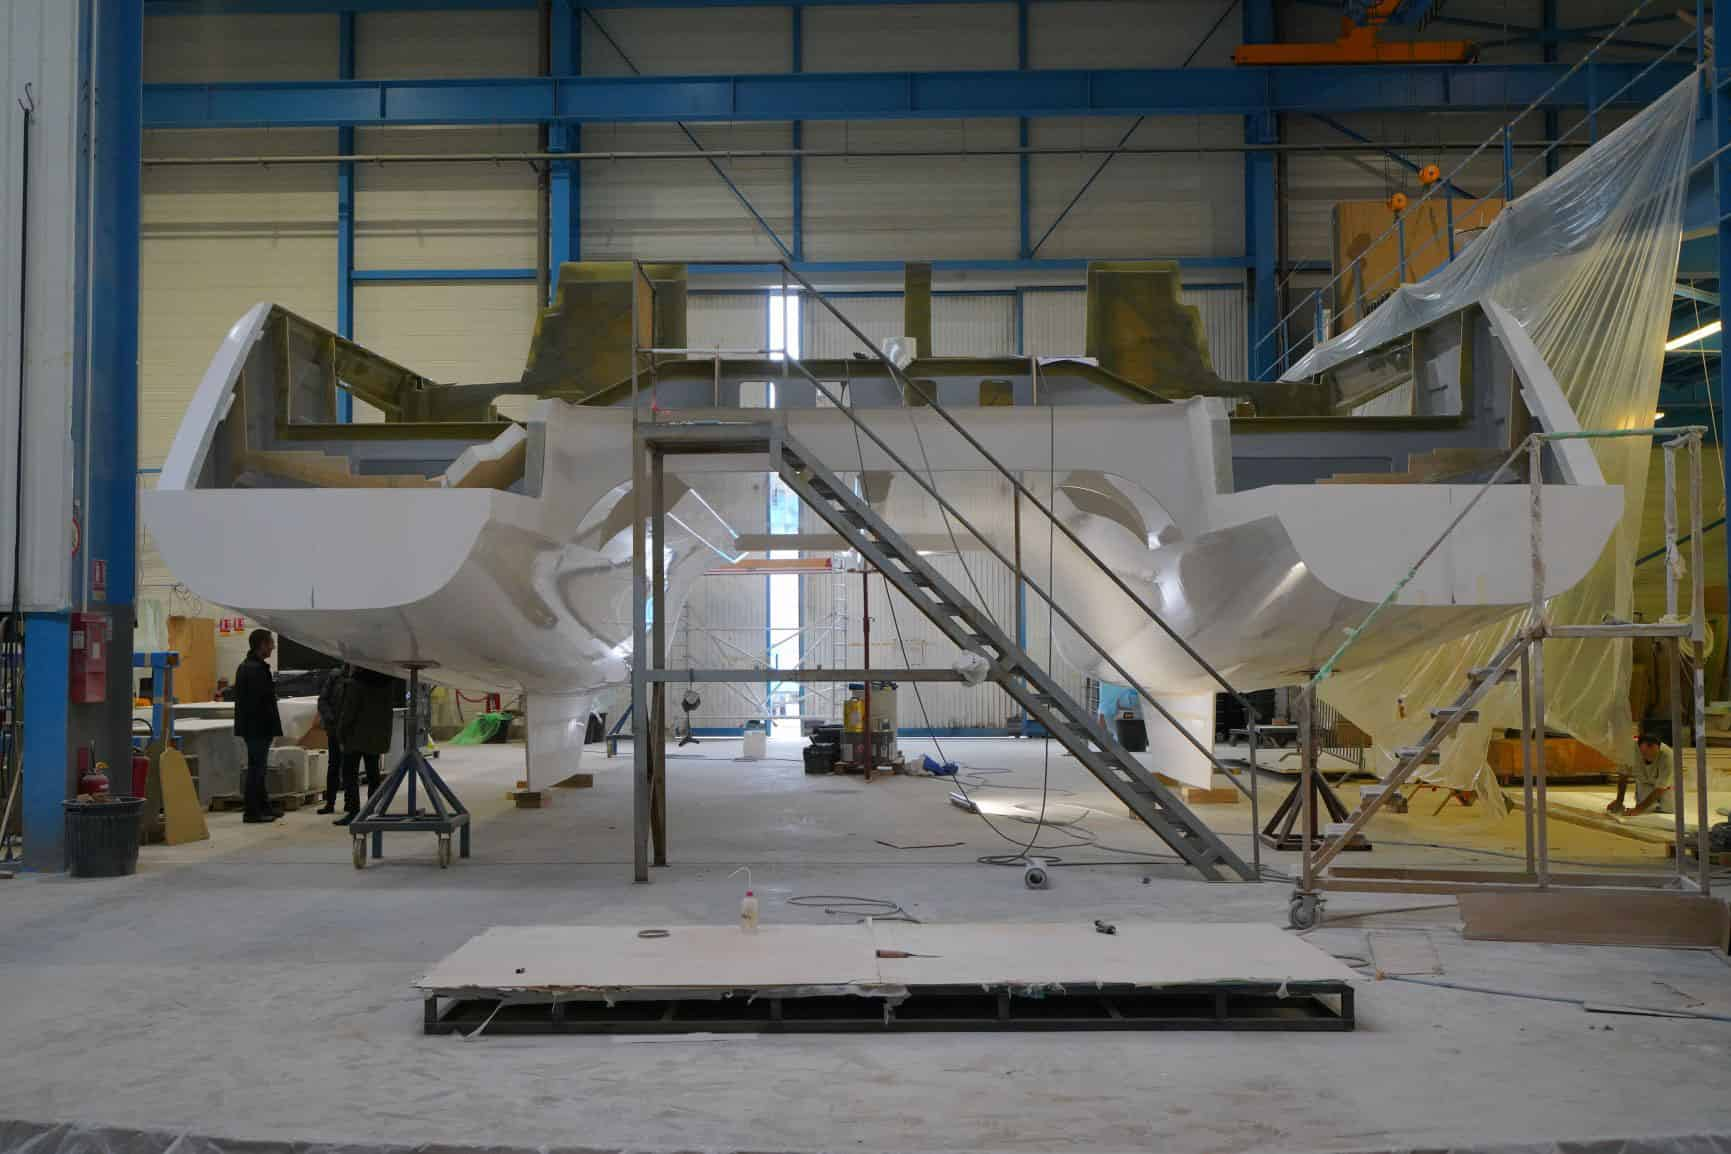 Bulkheads are installed before the hull is removed from the mold to ensure exact shape